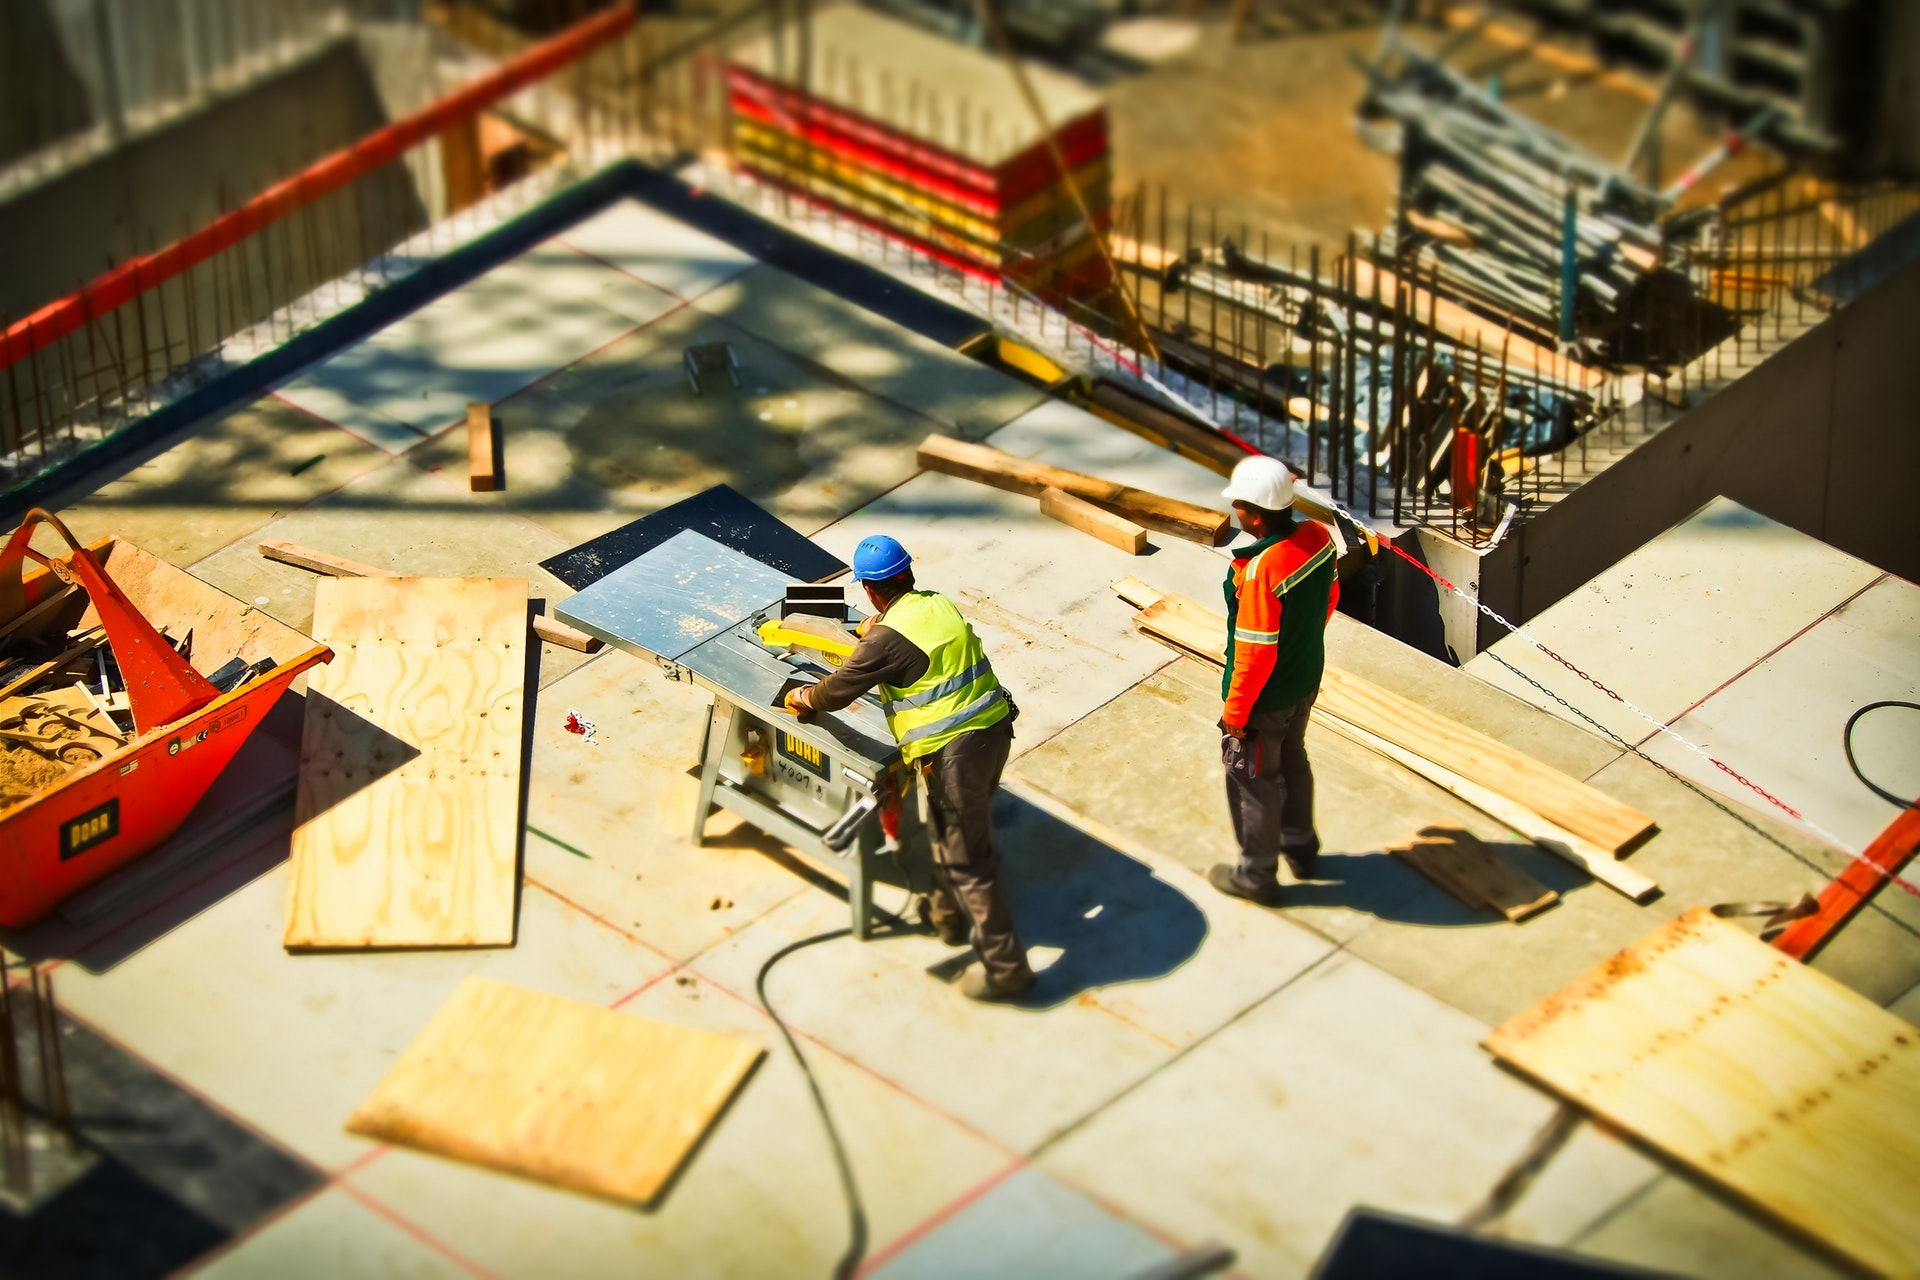 an image of construction manager overseeing staff on construction site.